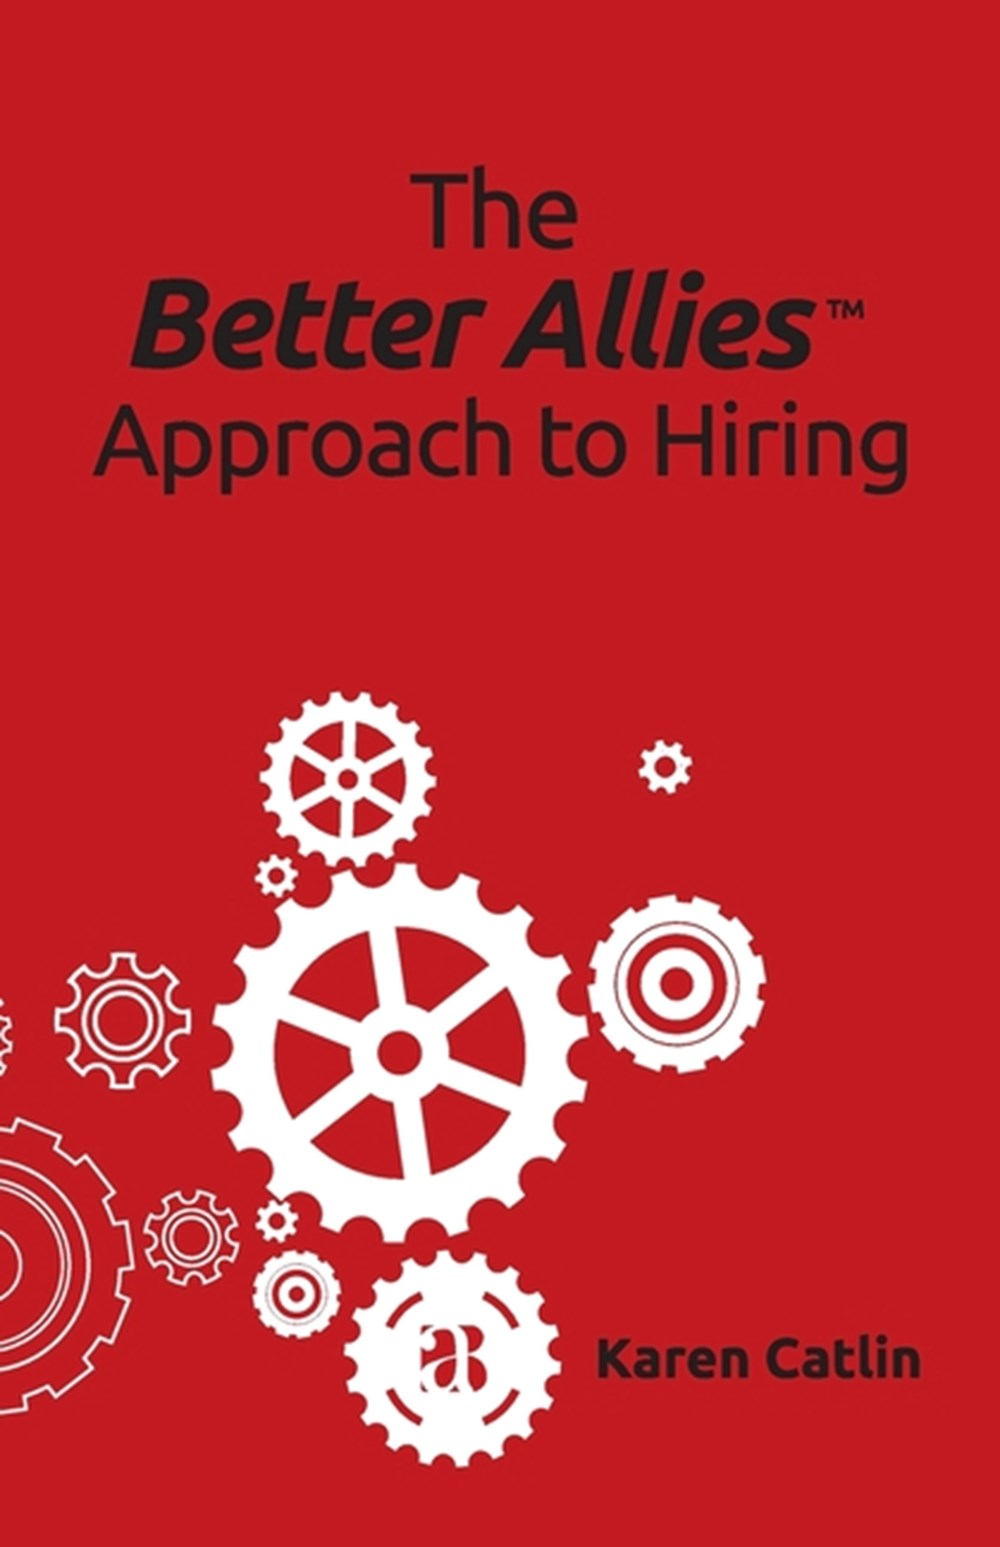 Better Allies Approach to Hiring